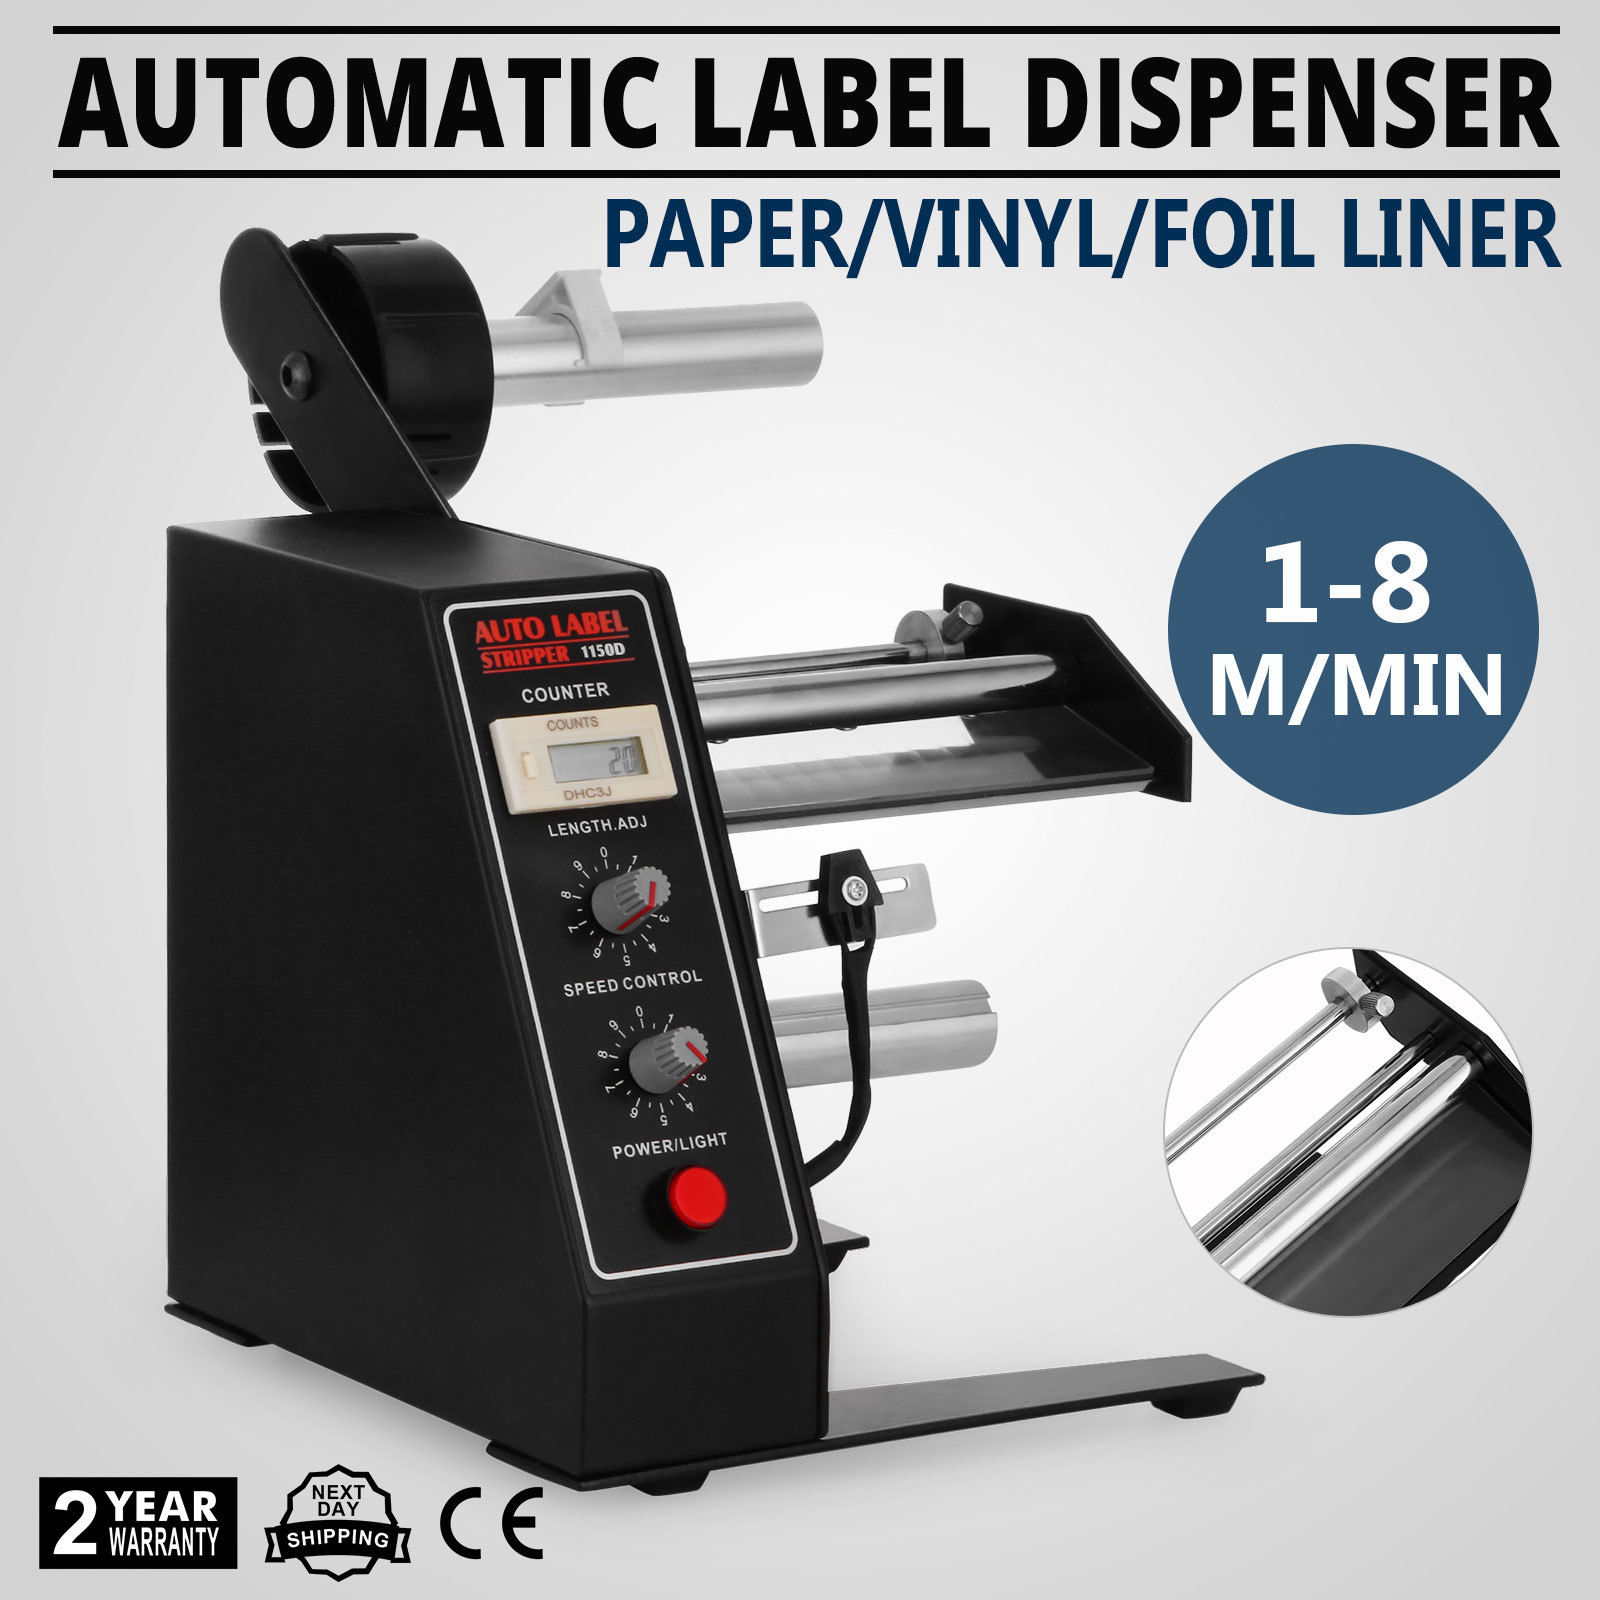 AL-1150D Automatic Label Dispenser 4-140mm Etikettiergerät Einstellbar Labeling Machine AUTO Etikettiermaschine Digitale Steueru